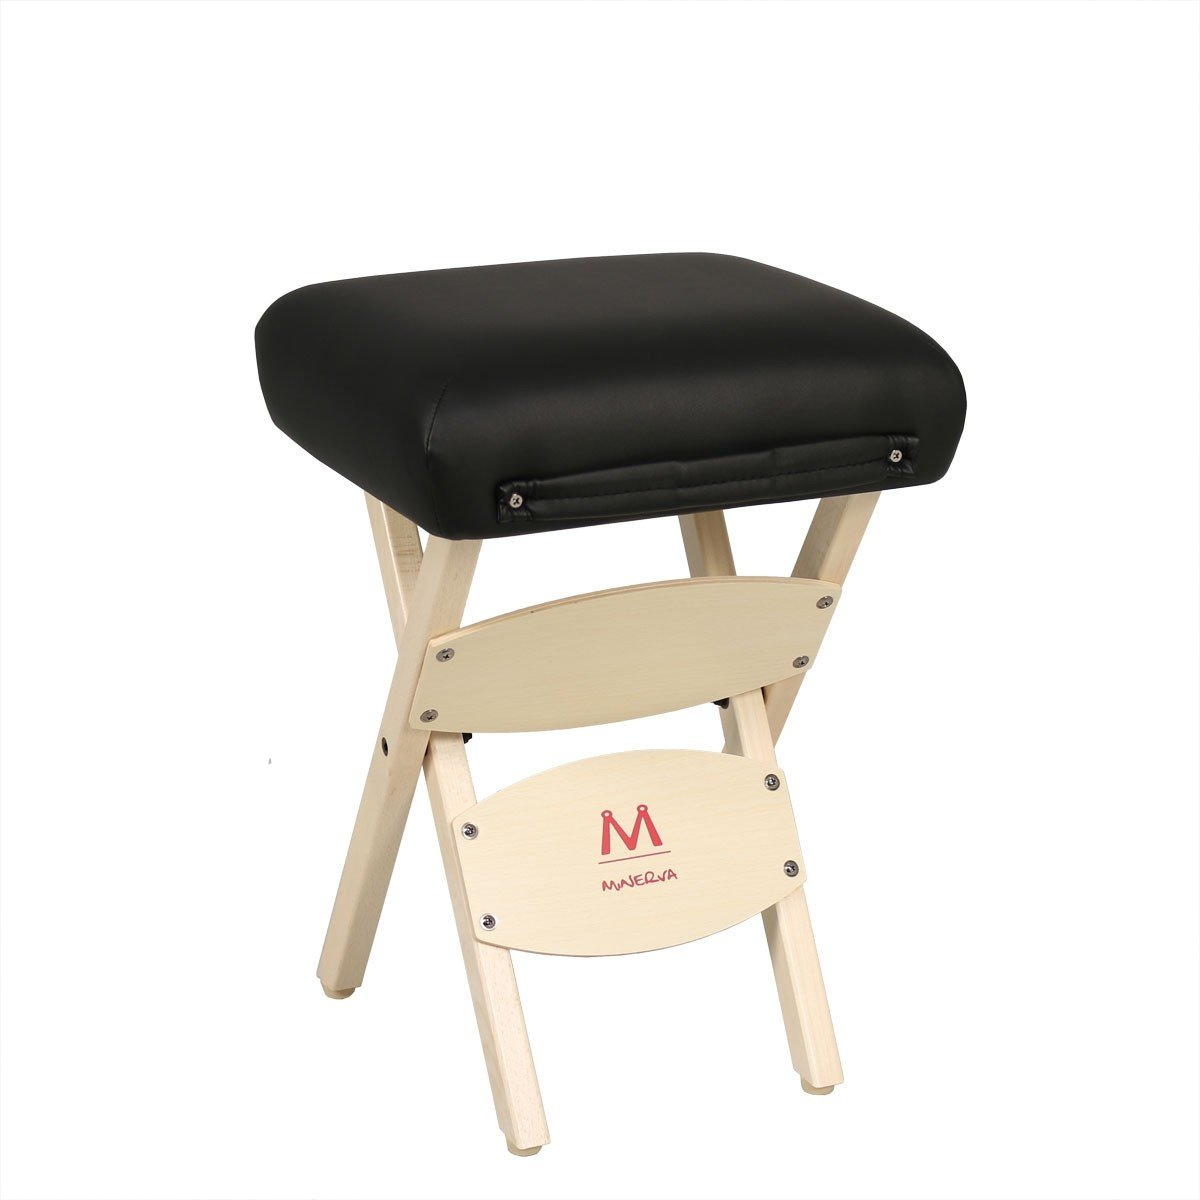 Minerva Portable Wooden Massage Stool with Carry Handle – Salon Spa Makeup